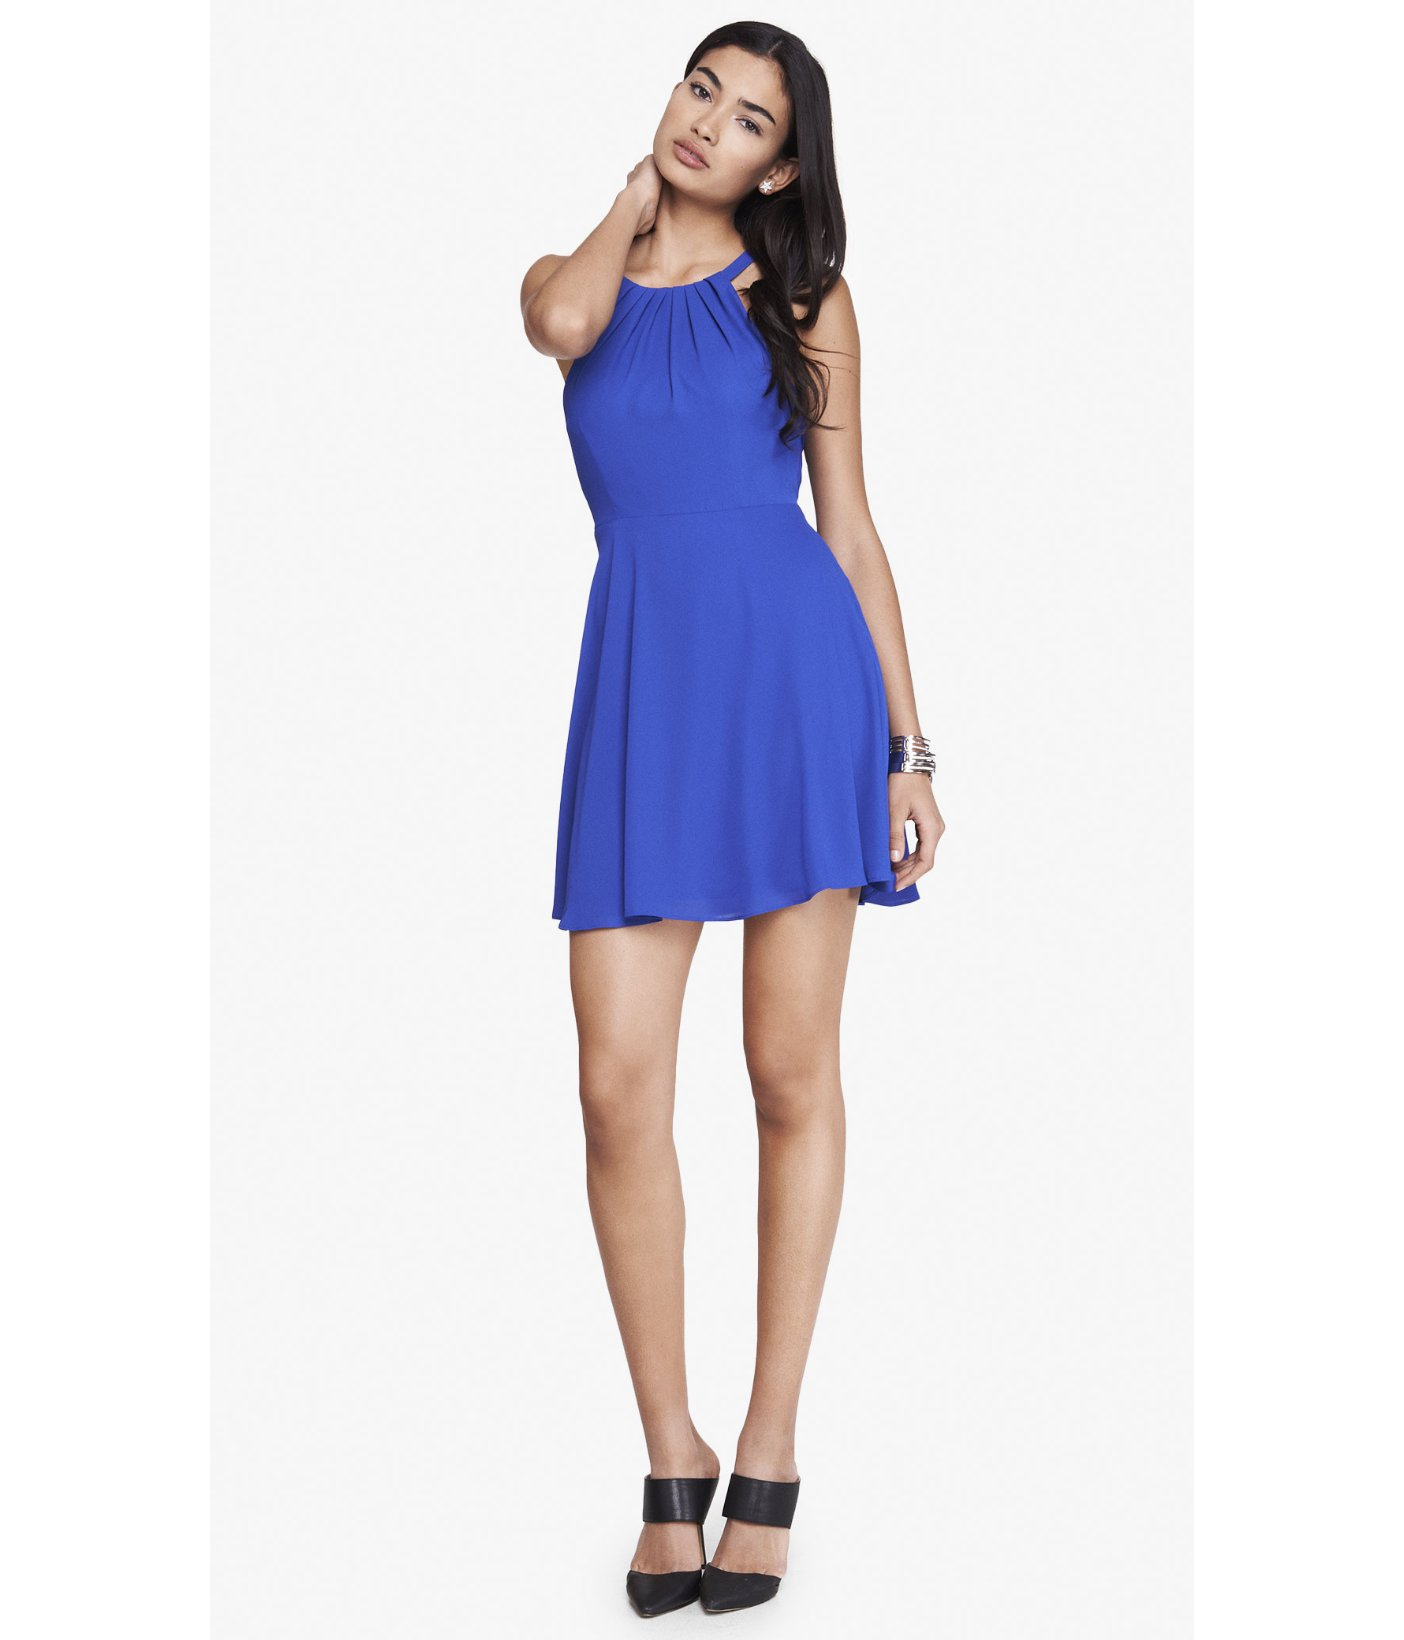 Express Royal Blue Fit And Flare Halter Dress in Blue  Lyst